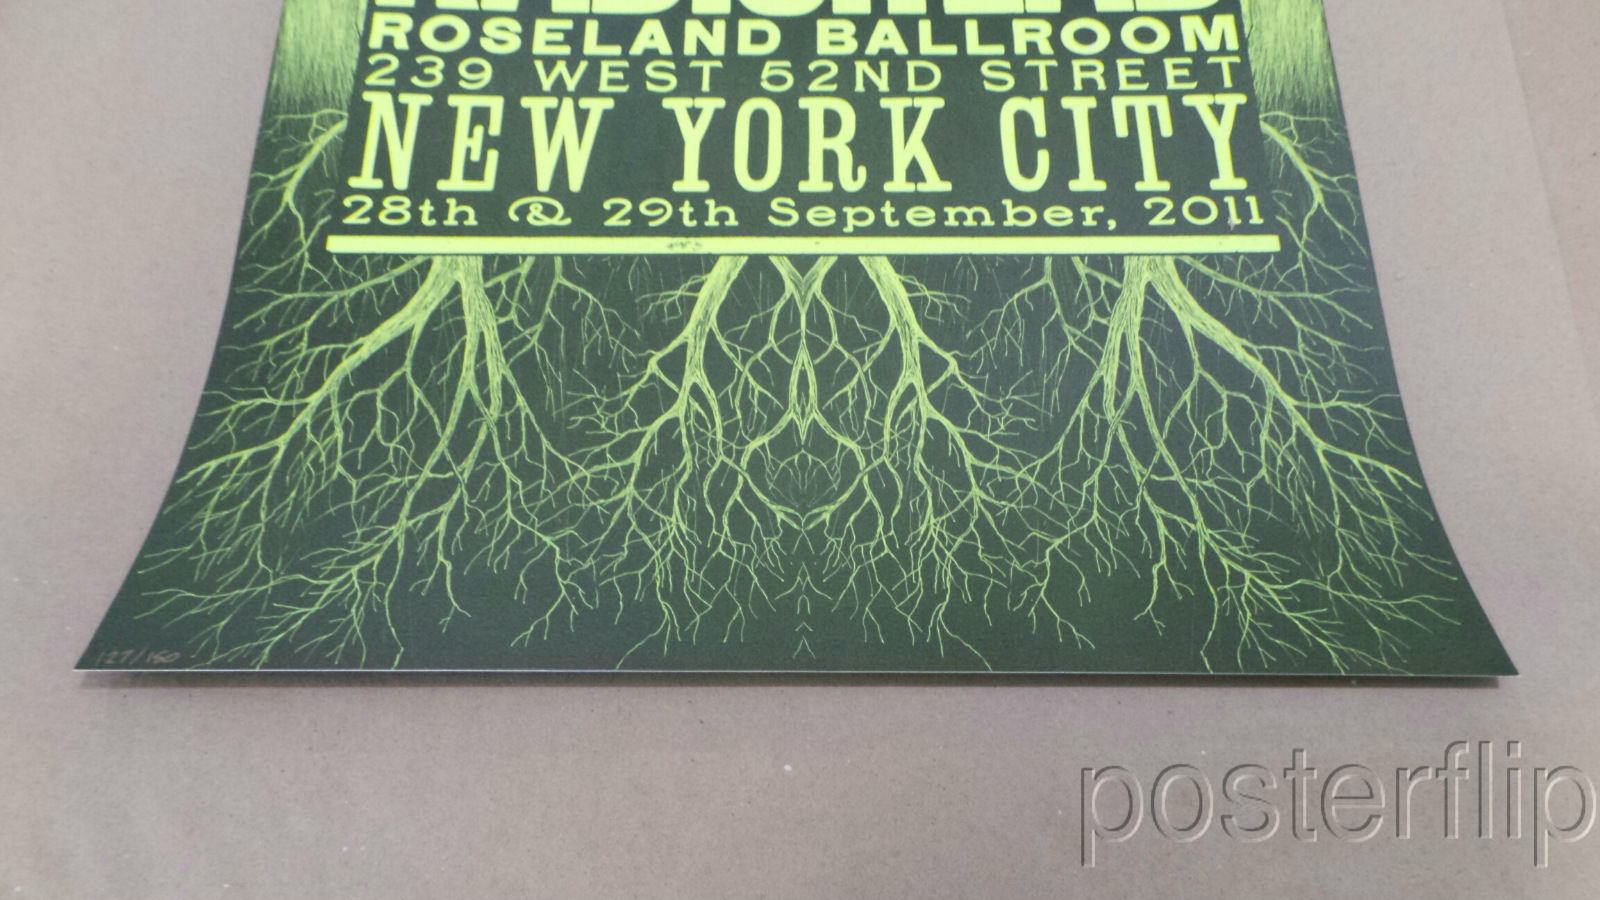 Radiohead Roseland Ballroom NYC 2011 Posters all 4 colors Edition xx/150 Framed